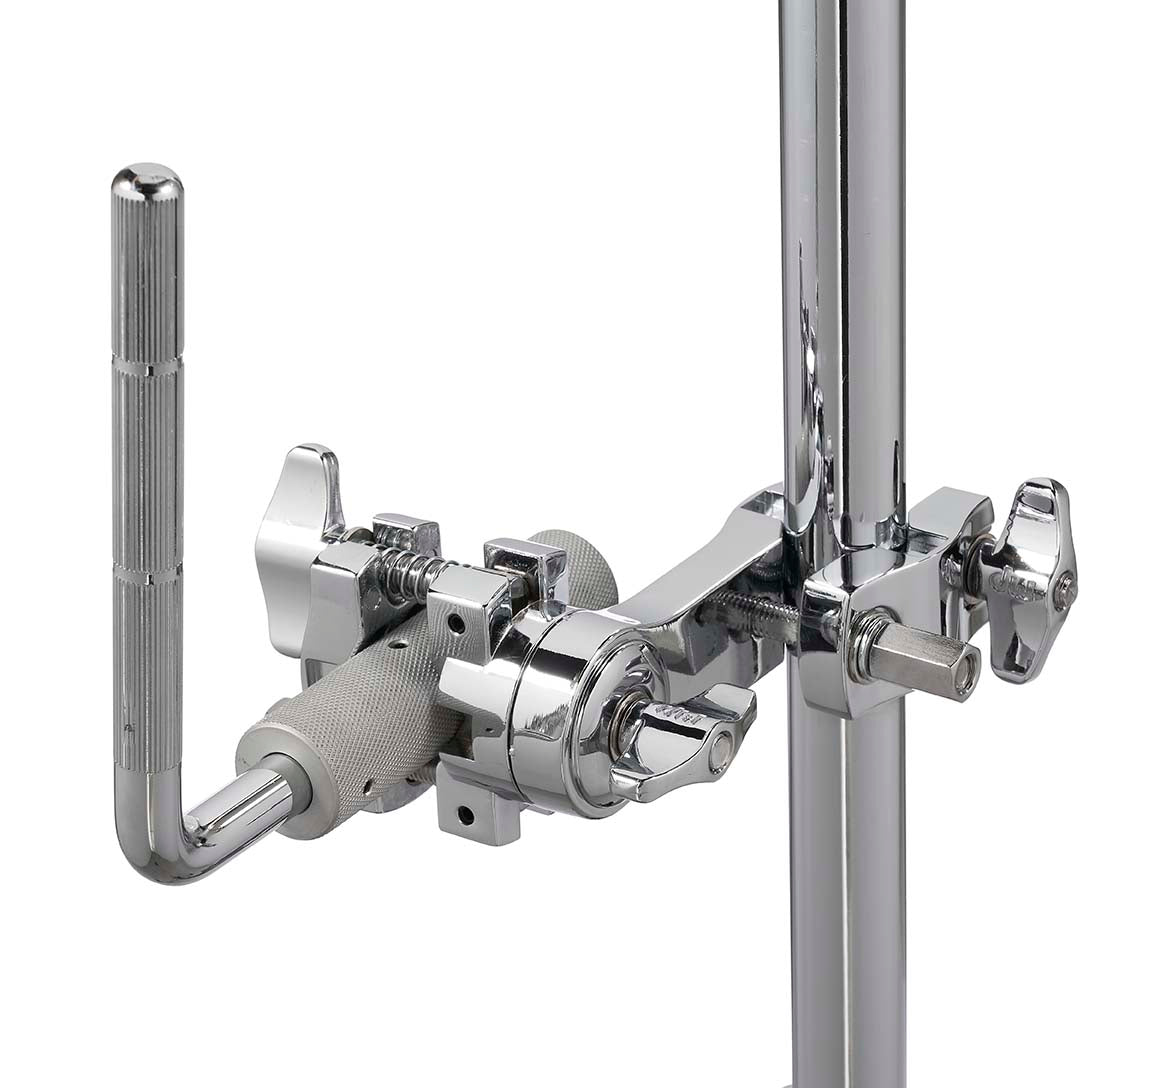 DW DWSMTA12 1in to 1/2in L-Arm for V Clamps with Lock